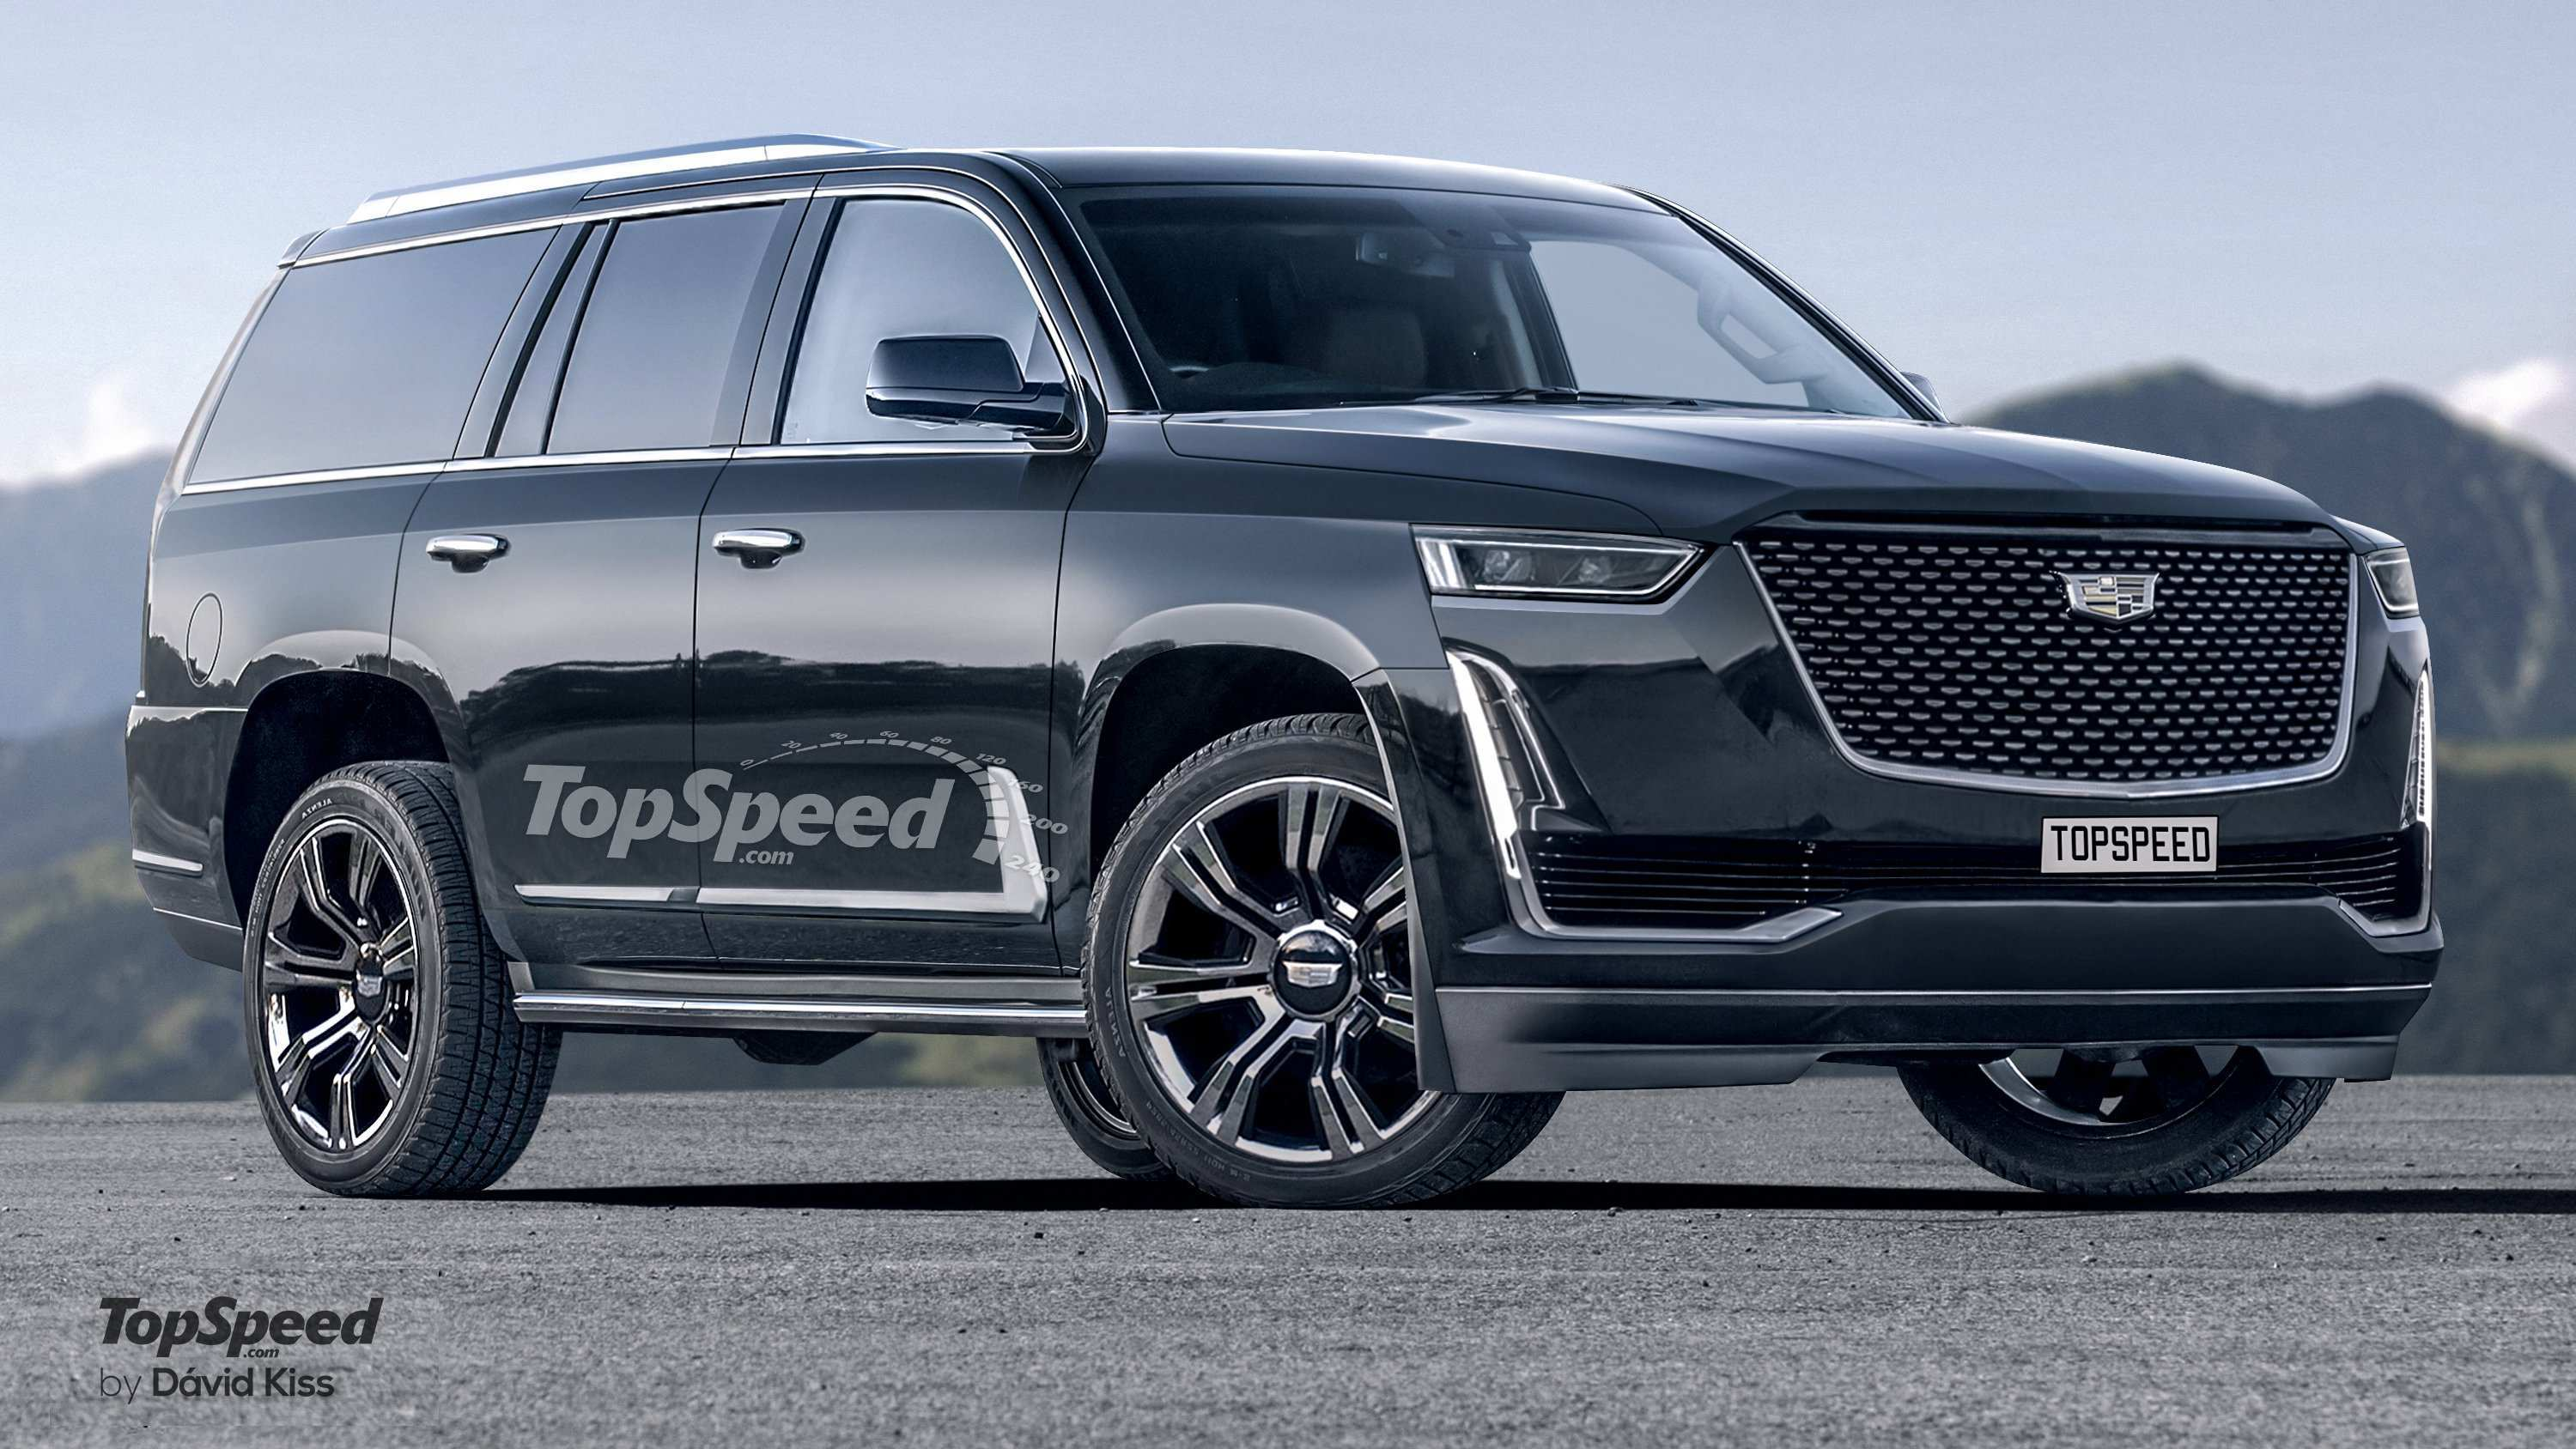 47 Great 2020 Cadillac Escalade Latest News Overview with 2020 Cadillac Escalade Latest News